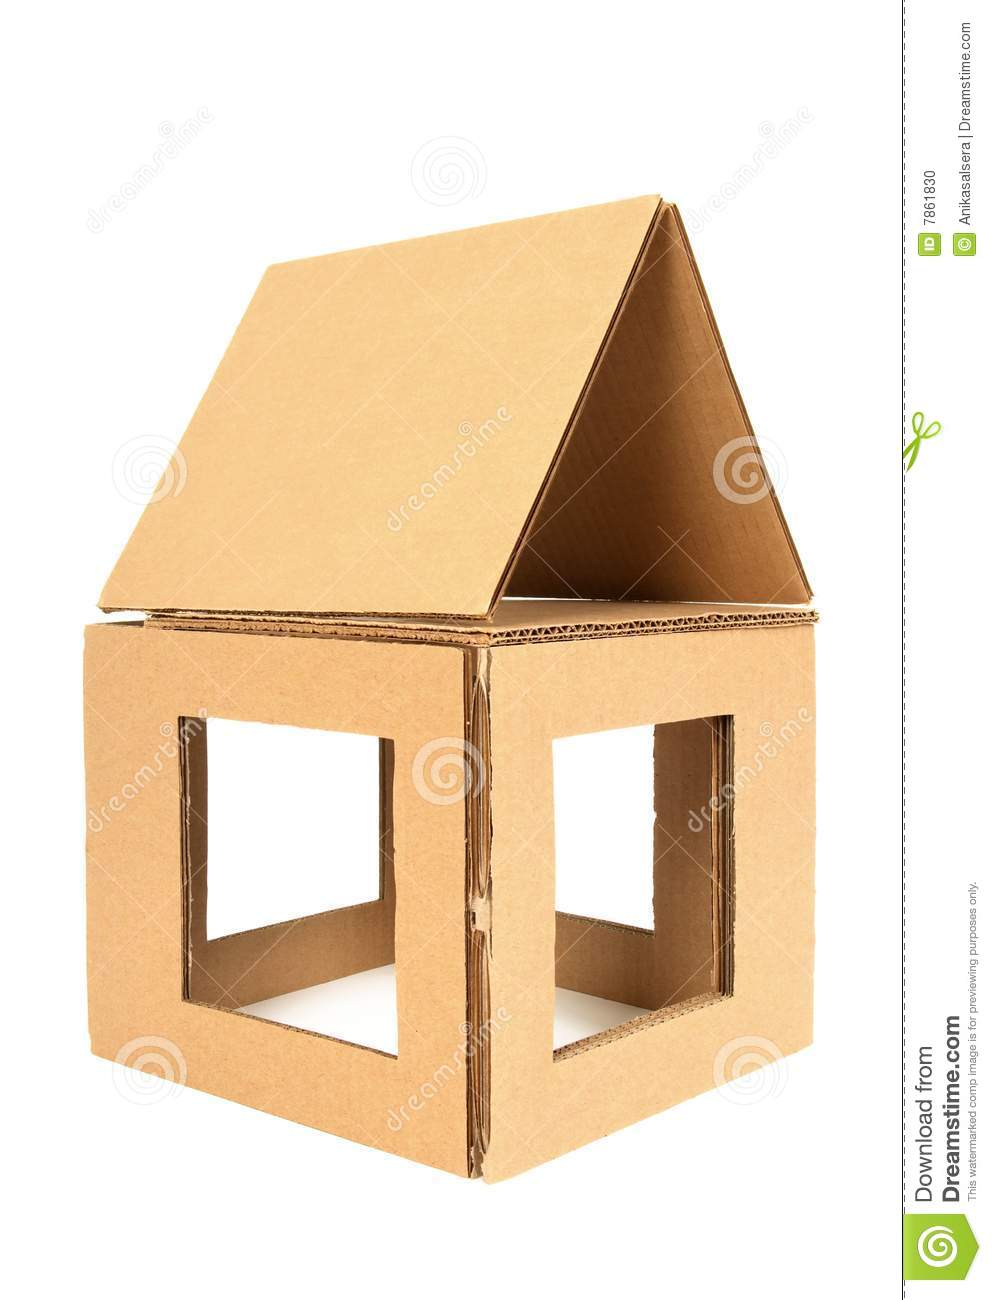 Stock Photo Cardboard House Image7861830 on Old English Cottage Plans